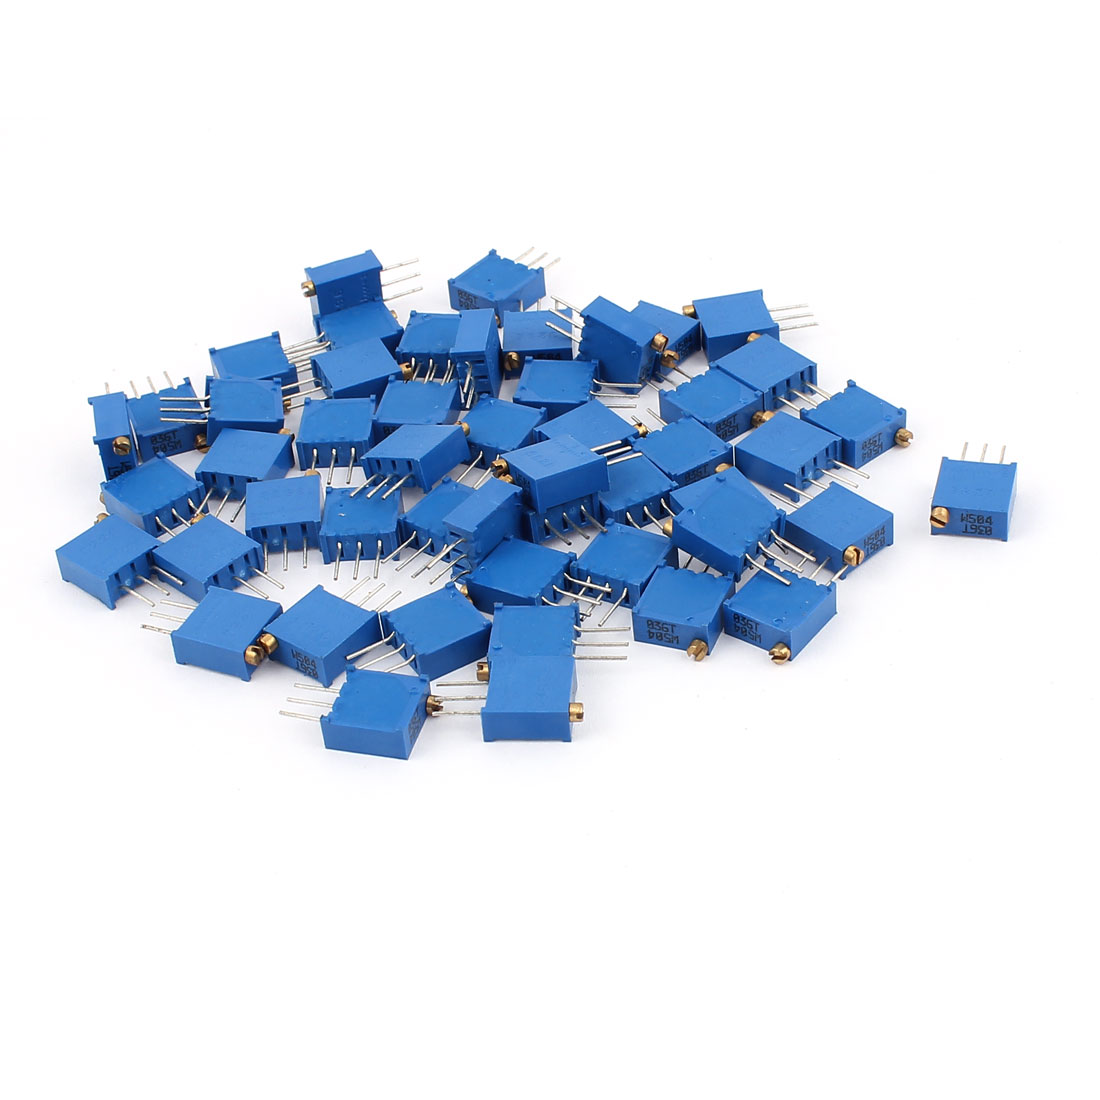 50Pcs 3296W-504 500K Ohm Resistor Trim Pot Potentiometer Trimmer Blue